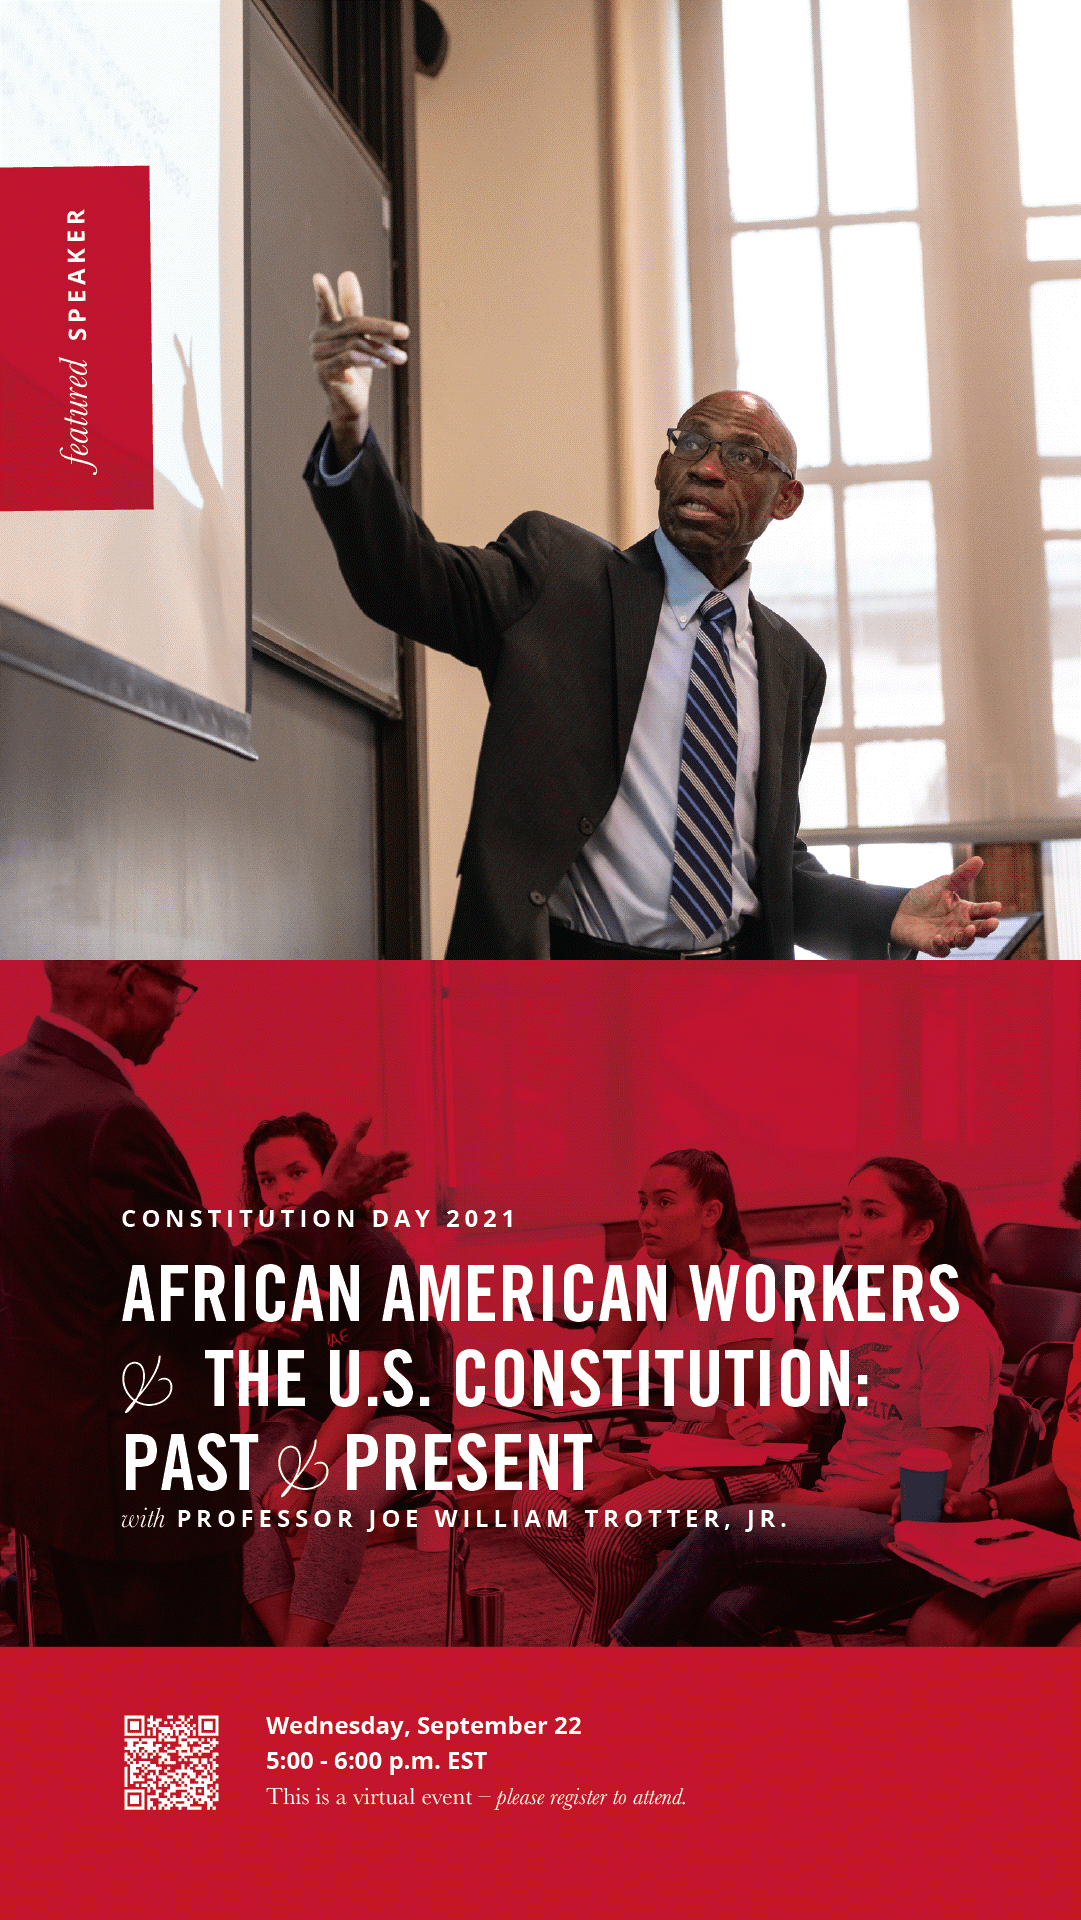 """Flyer reading Constitution Day 2021, African American Workers & The US Constitution: Past and Present with Professor Joe Willia Trotter Jr. Wednesday, September 22 from 5-6 pm EST. This is a virtual event, please register to attend."""""""